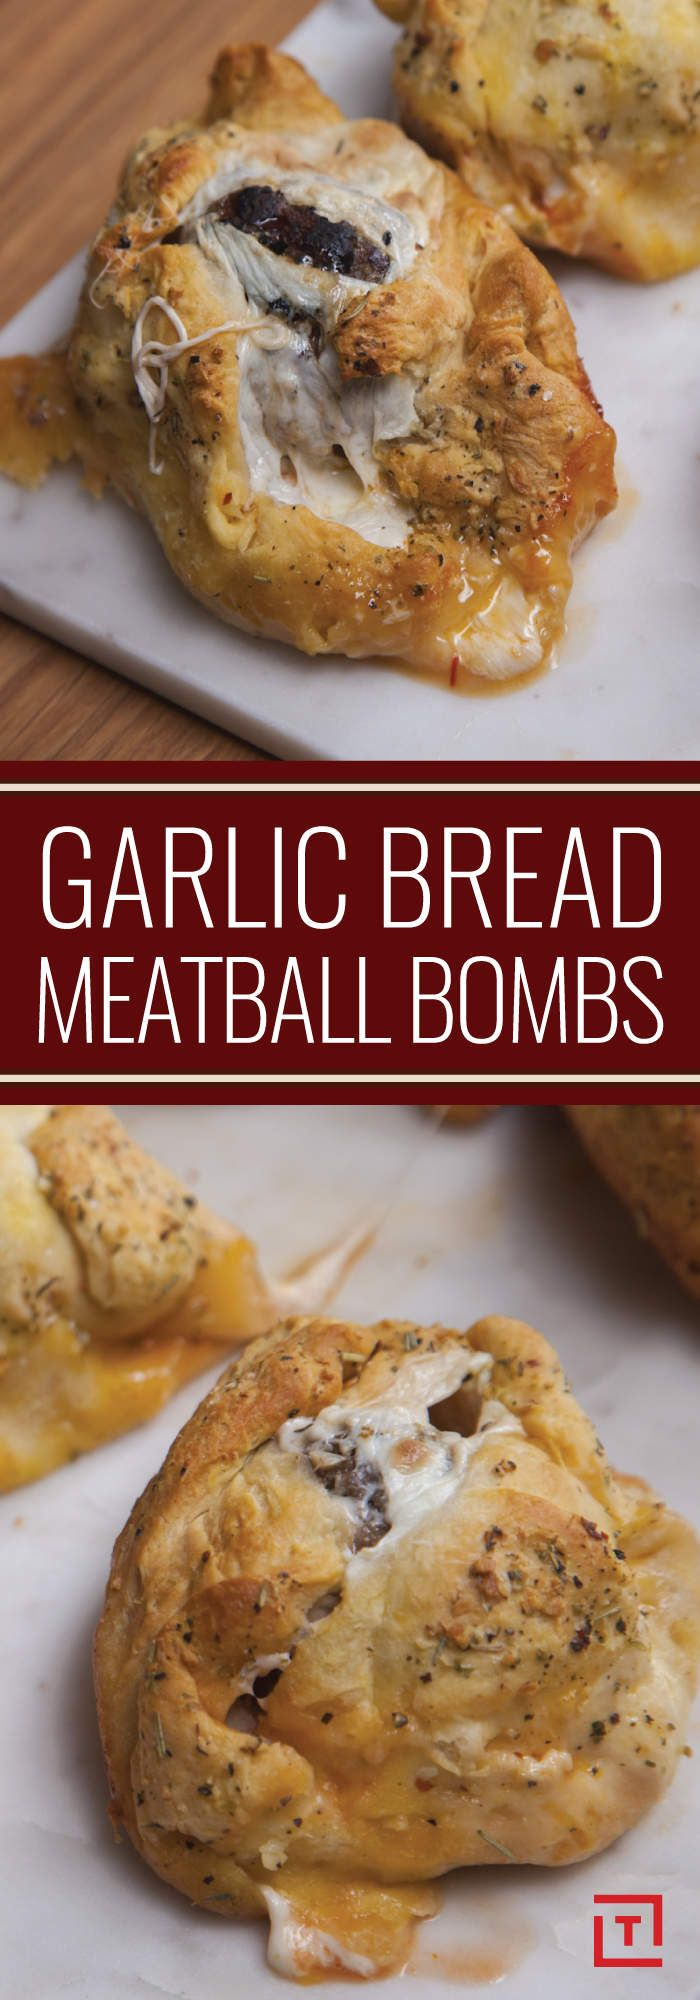 Pay attention, garlic lovers: This one's for you. While a fresh-baked garlic knot might satiate your cravings for the pungent allium, one cannot subsist on carbs alone -- which is why we're kind of obsessed with Food Steez's garlic bread meatball bombs. They're just as flavorful, help you get your protein quota for the day, AND they're easy to make right in your own kitchen. What's not to love?